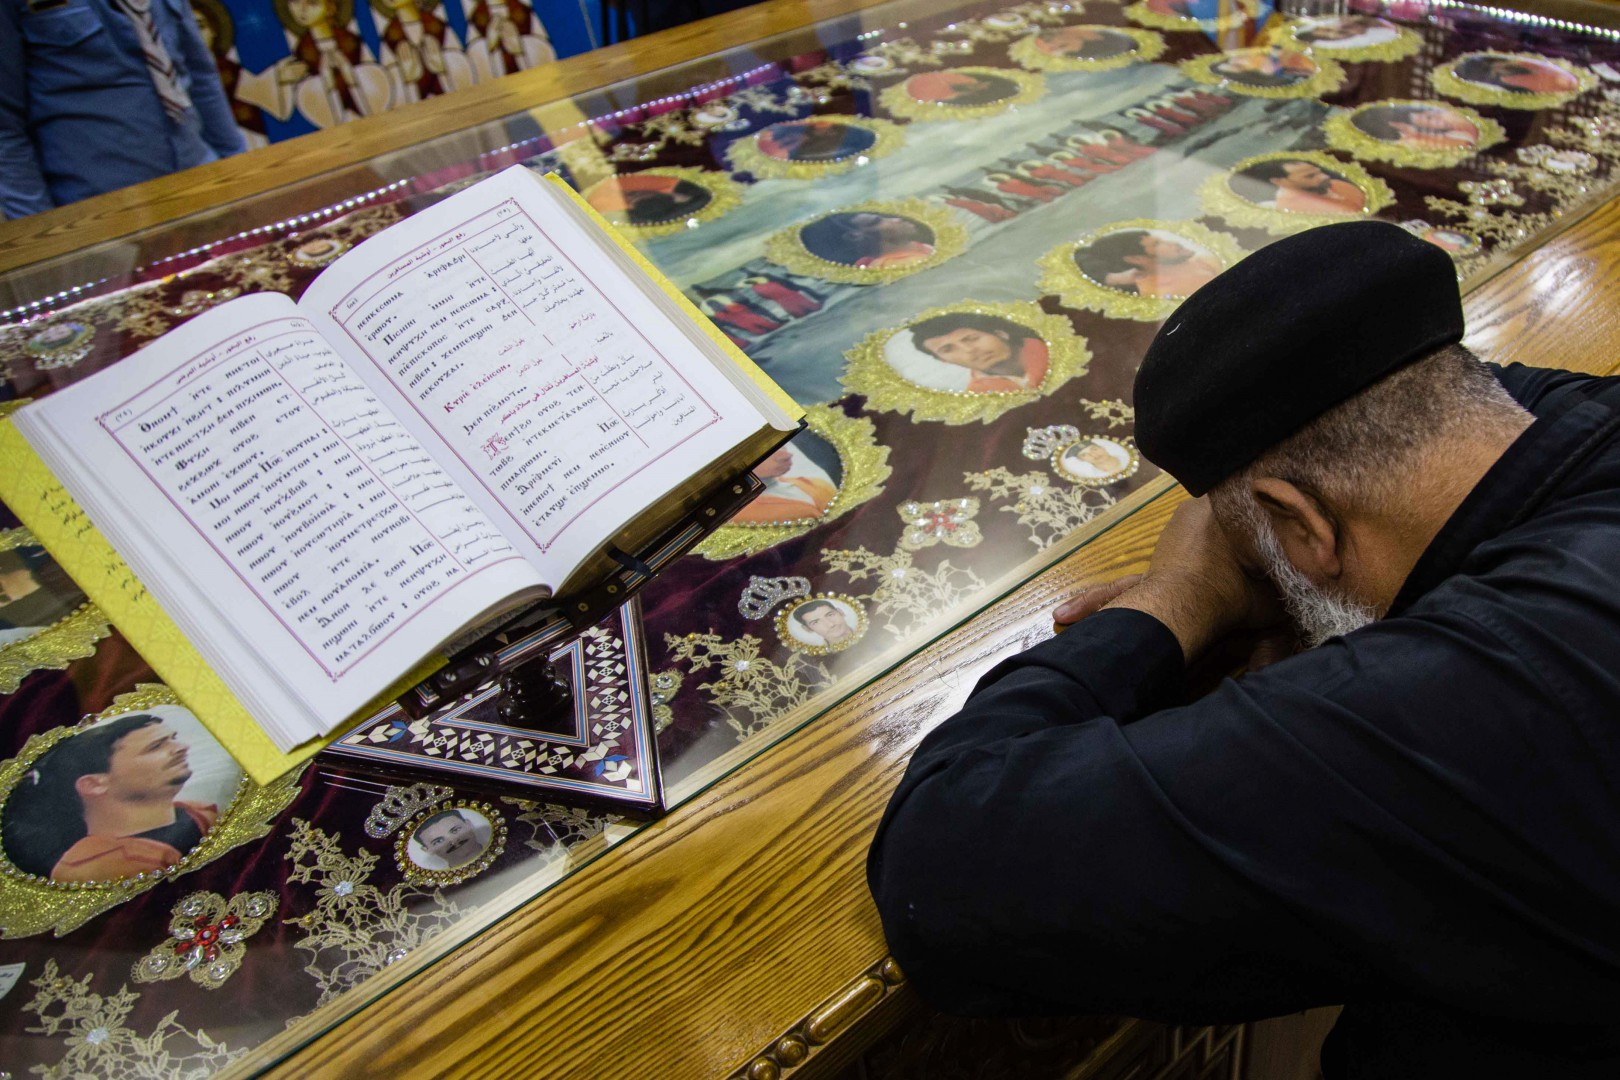 A priest mourns over the portraits of 20 Egyptian Coptic Christian men who were beheaded by jihadists on the beach of Sirte in Libya in 2015, during their funereal ceremony in the Martyrs Church in the village of Al-Our in Egypt's southern province of Minya on May 15, 2018, after their bodies were repatriated to Egypt.  / AFP PHOTO / IBRAHIM EZZAT